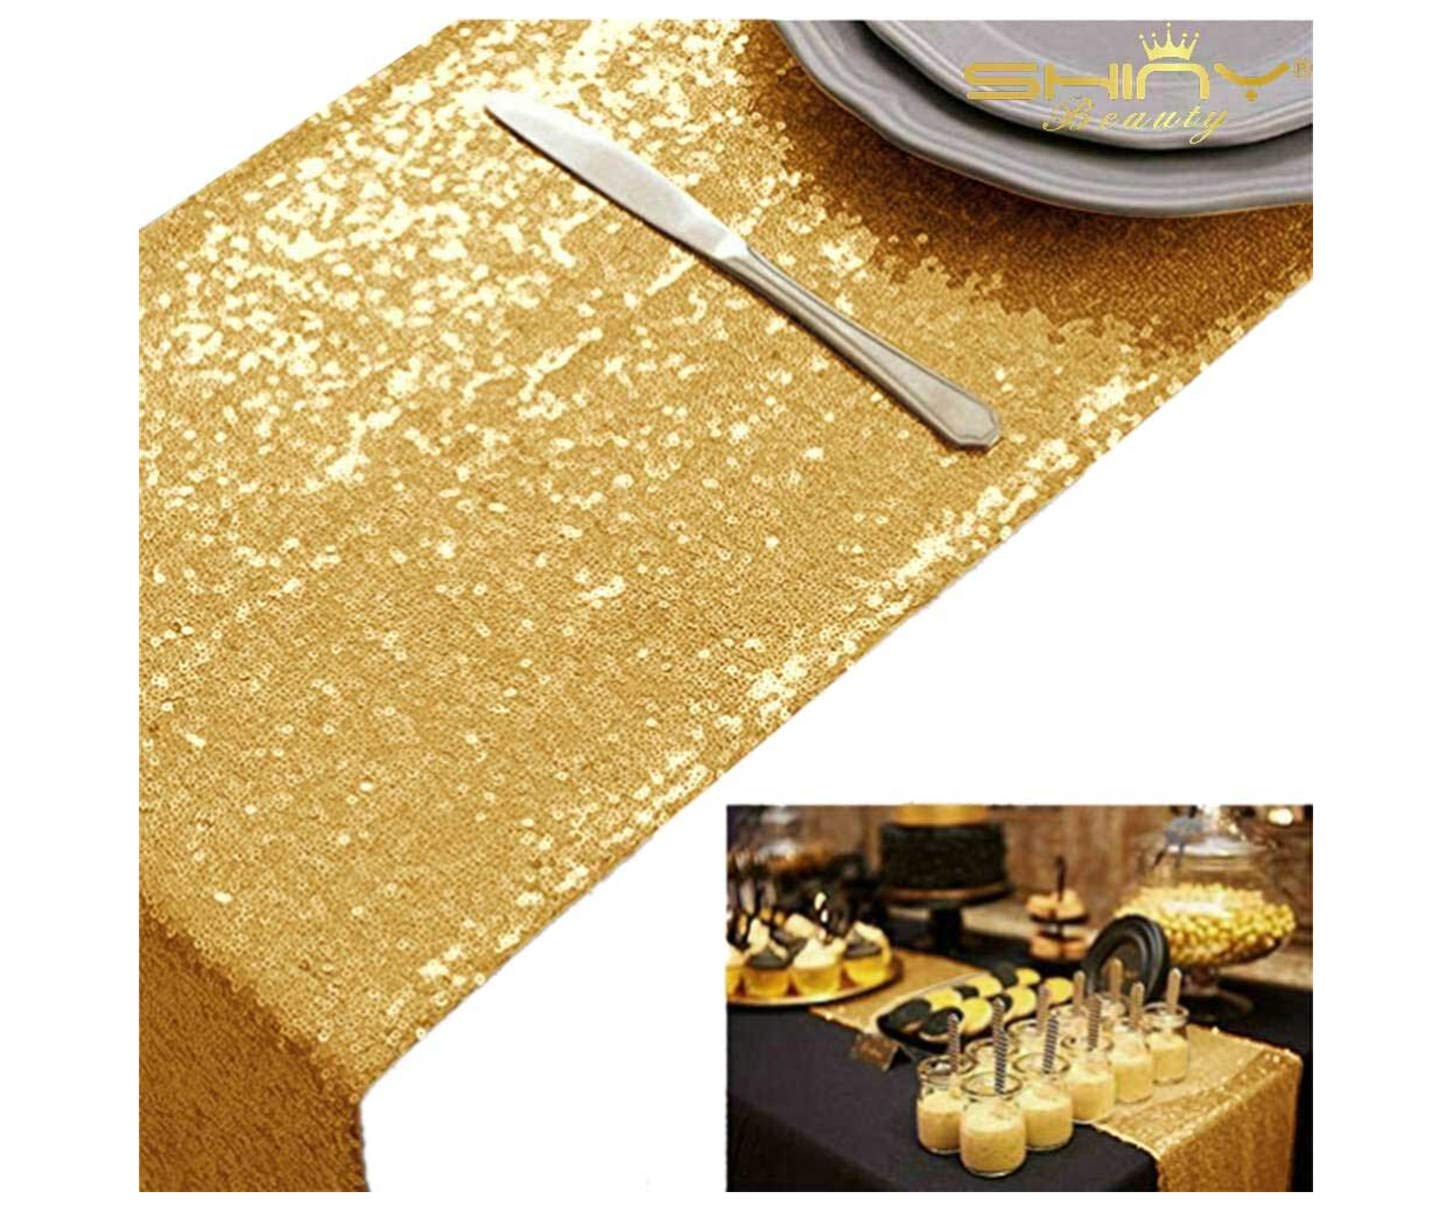 ShinyBeauty Table Covers for Party Gold 10pcs 12x72-Inch Sequin Table Runners Graduation Party Supplies 2018 Gold by ShinyBeauty